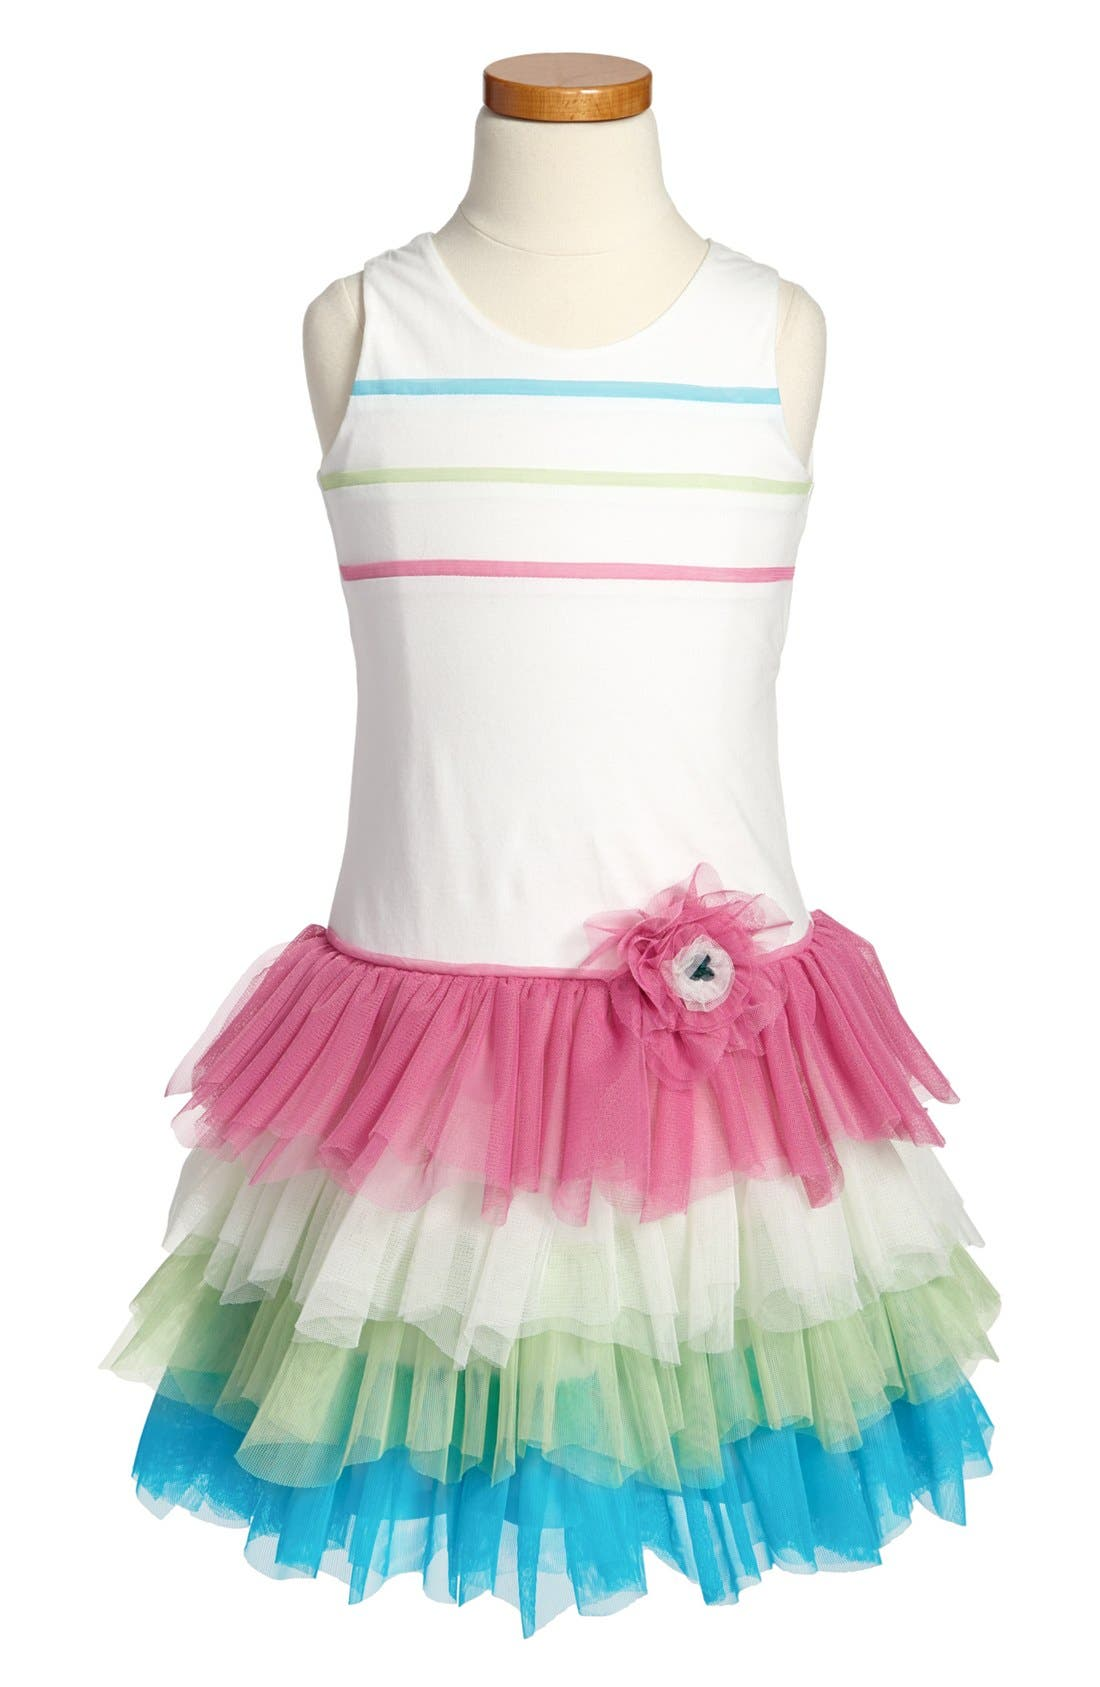 Alternate Image 1 Selected - Isobella & Chloe 'Tutti Frutti' Sleeveless Dress (Little Girls & Big Girls)